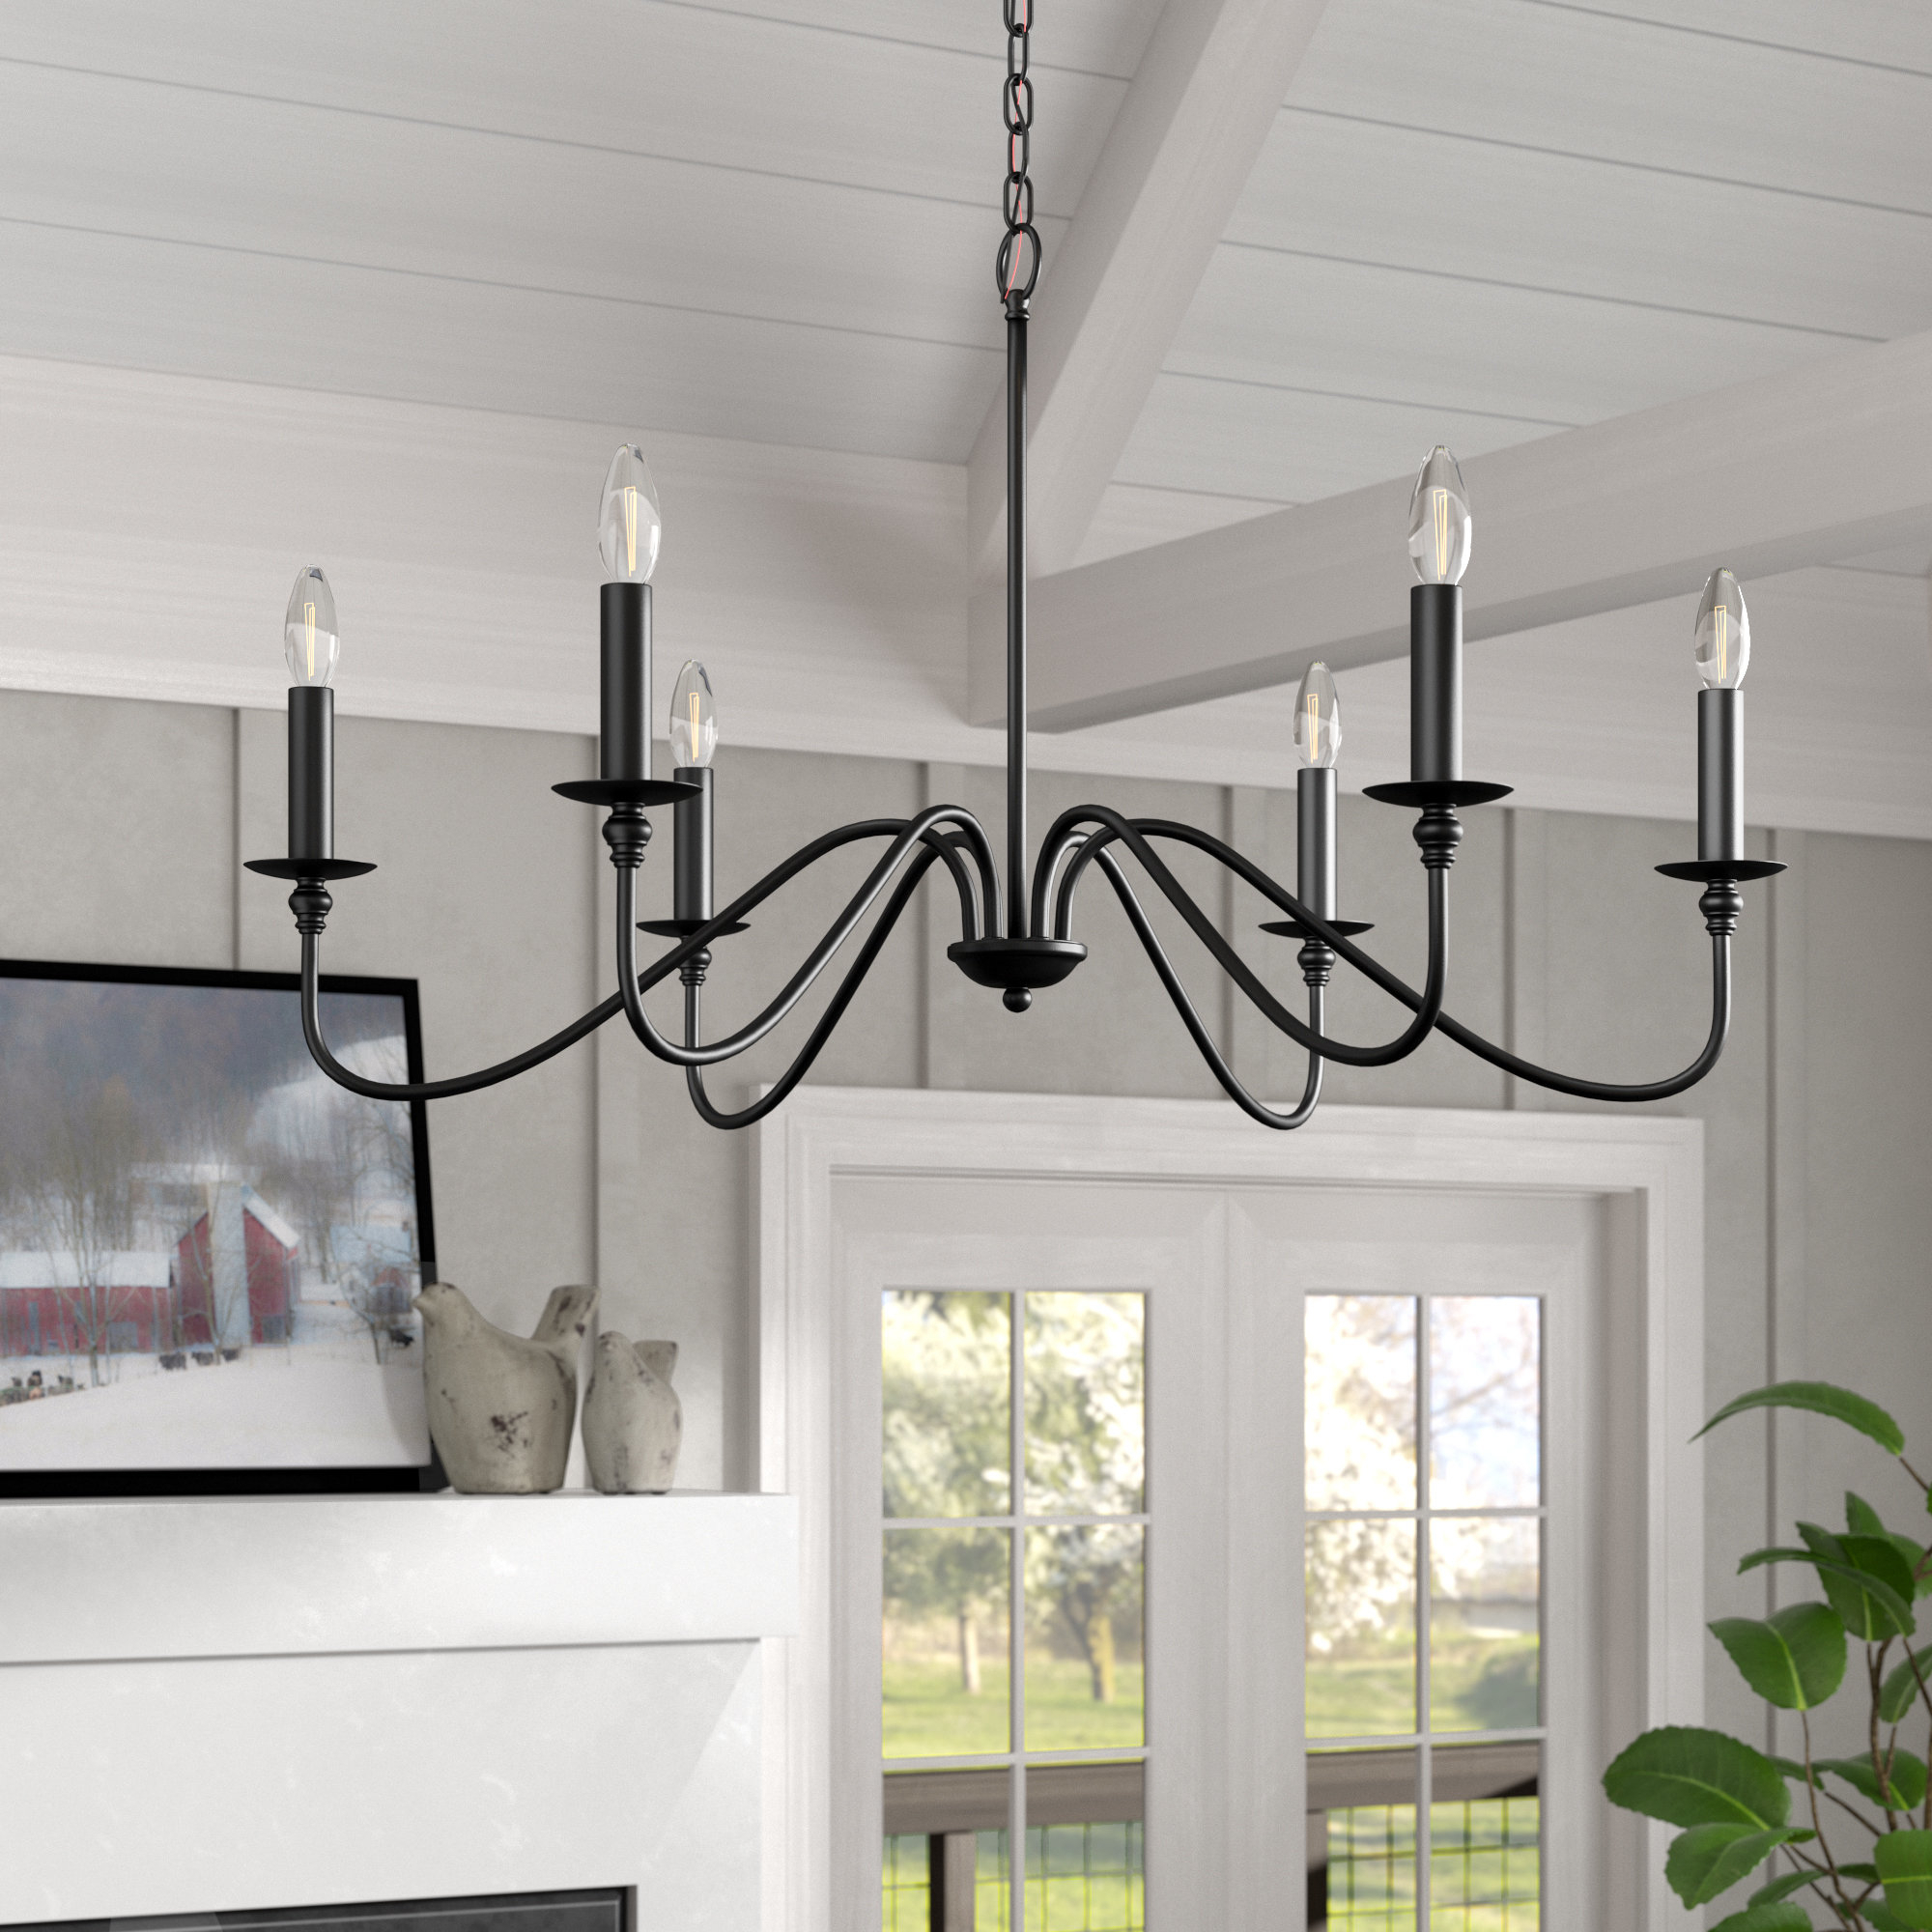 Hamza 6 Light Candle Style Chandelier Throughout Fashionable Hamza 6 Light Candle Style Chandeliers (Gallery 1 of 25)